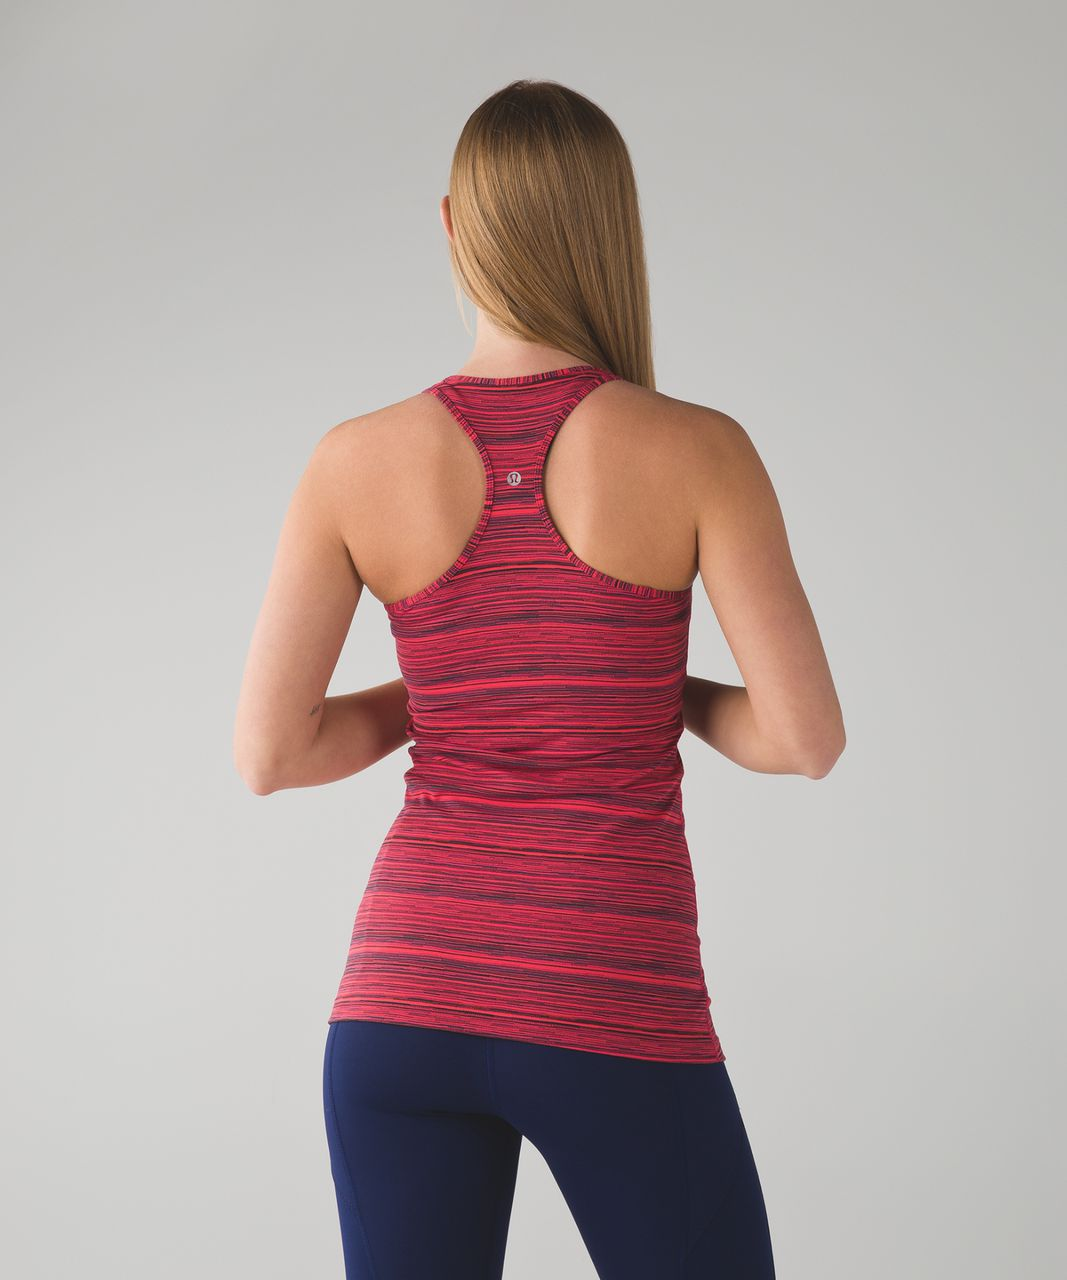 Lululemon Cool Racerback - Cyber Boom Juice Alarming